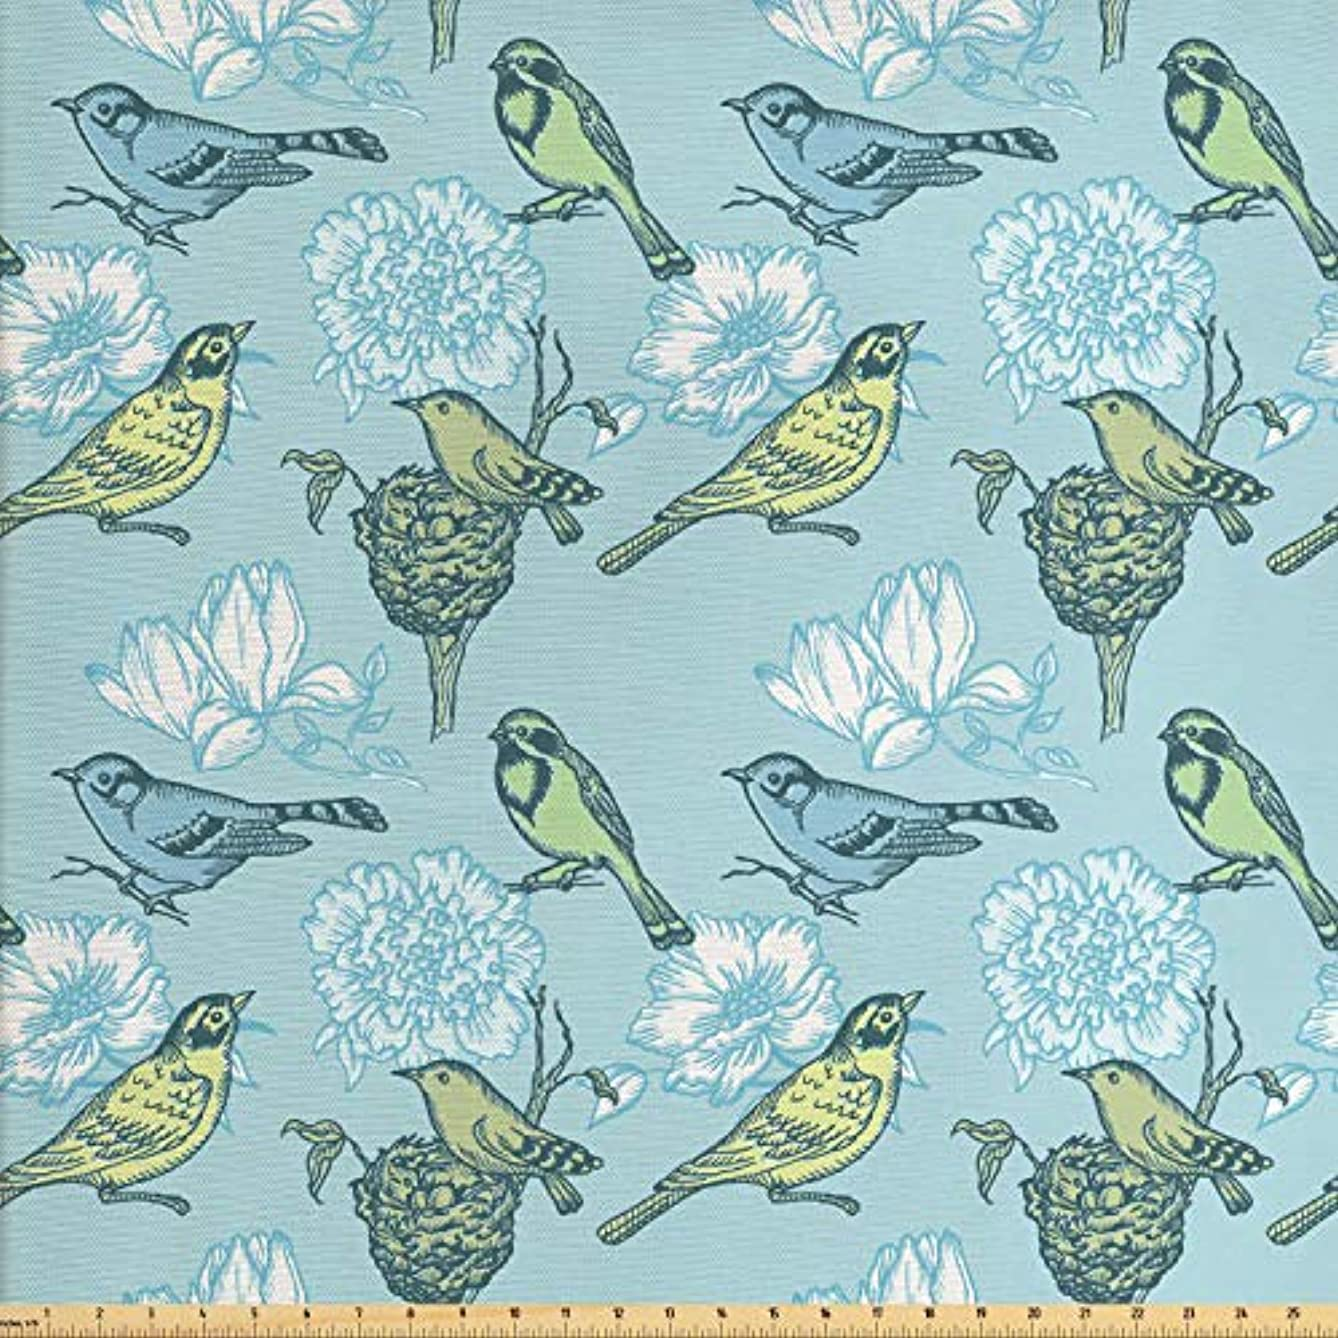 Lunarable Birds Fabric by The Yard, Mother Bird and Her Eggs Resting in The Nest on Abstract Floral Background, Decorative Fabric for Upholstery and Home Accents, 2 Yards, Pale Green Pale Blue